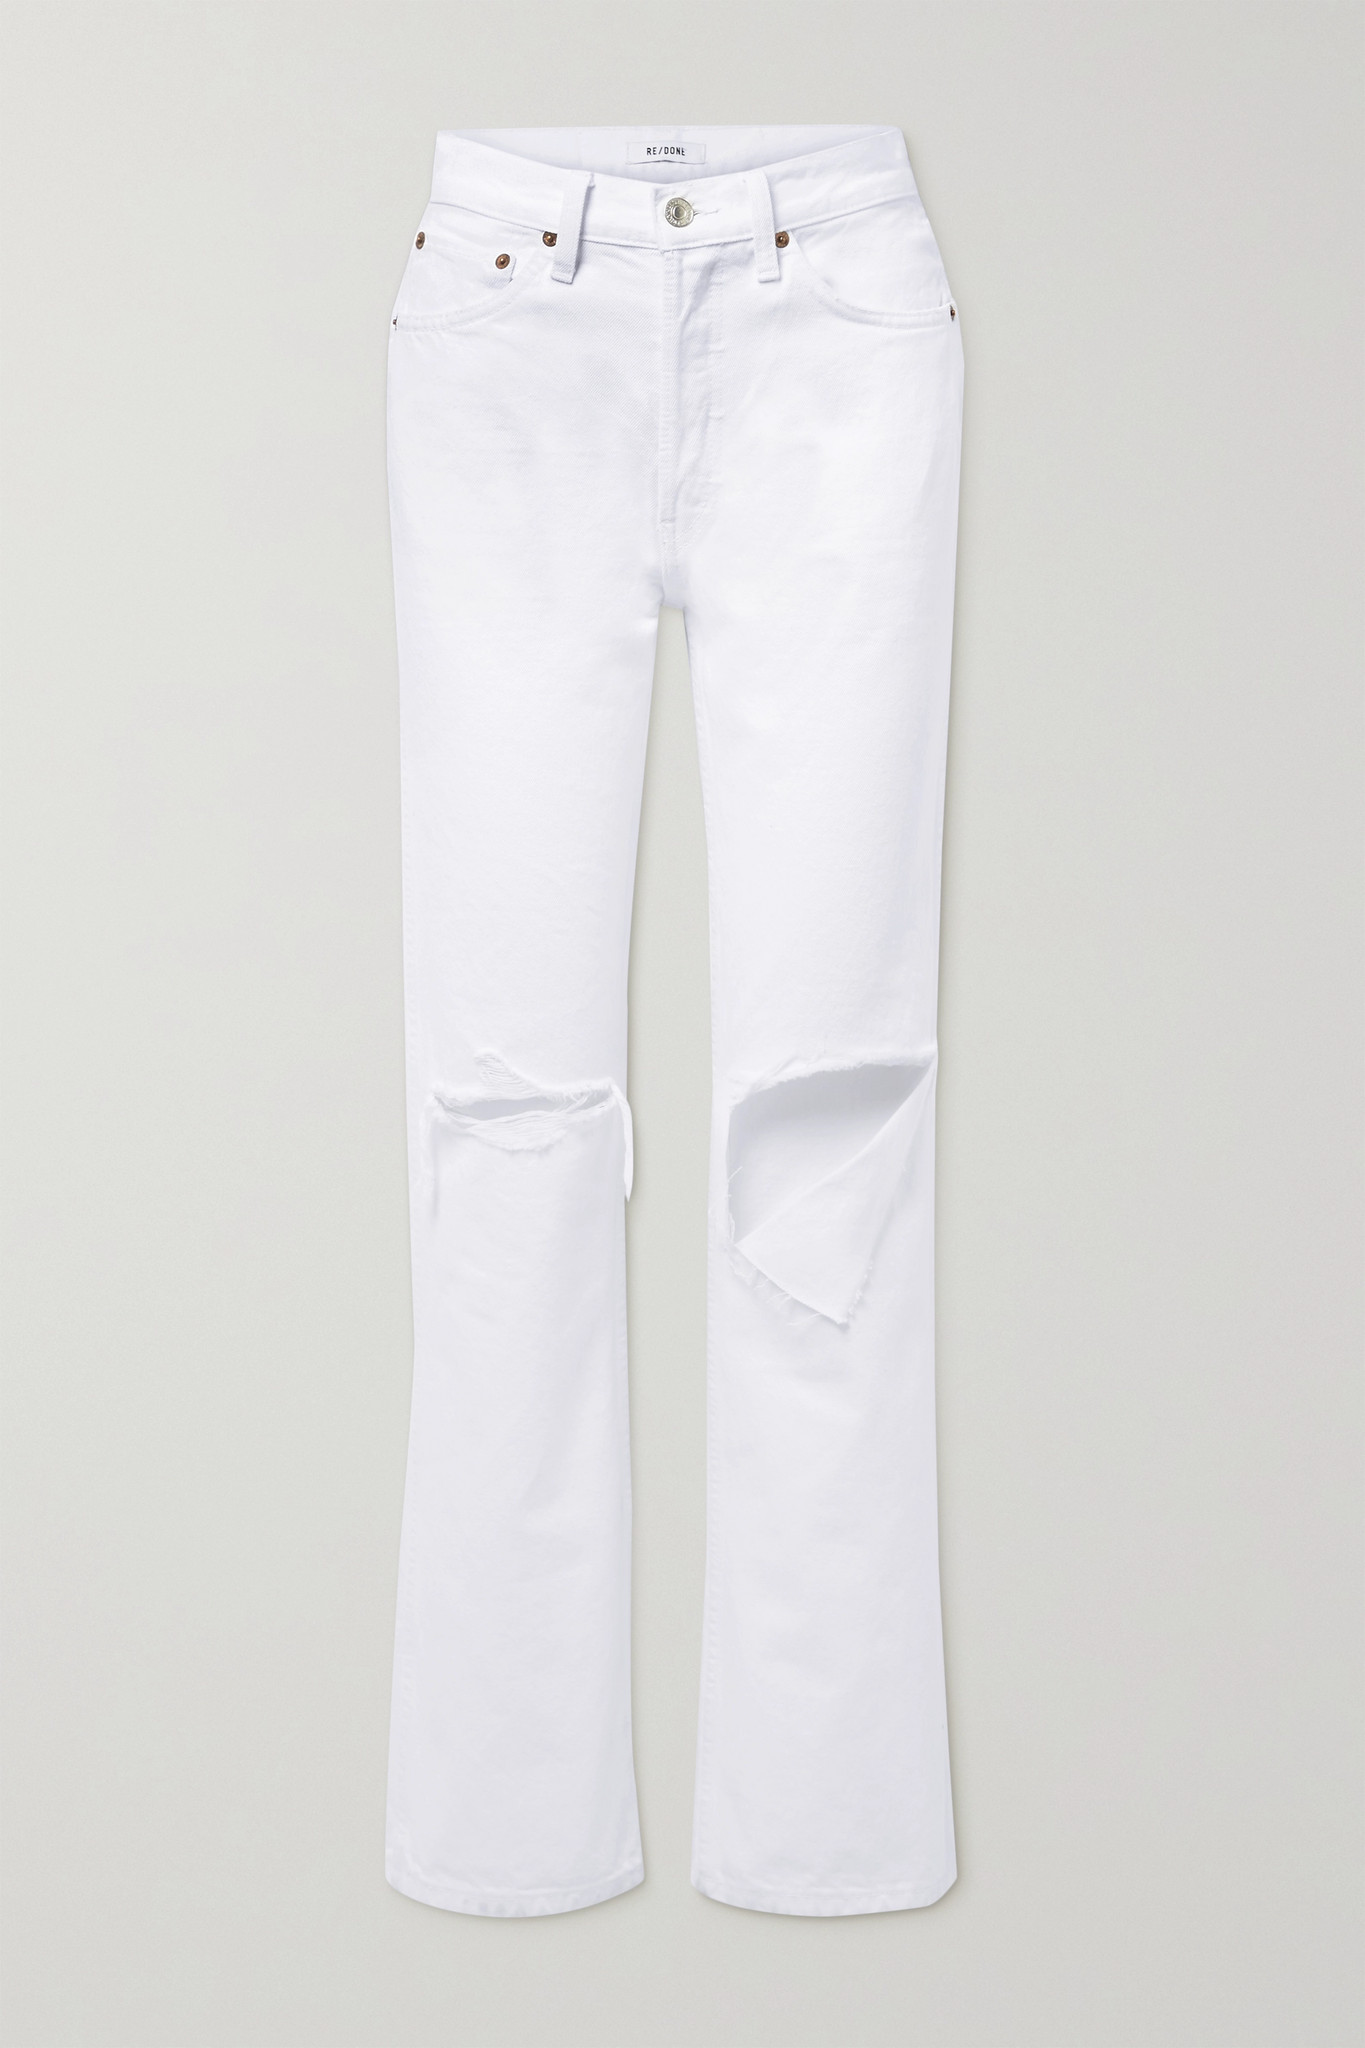 RE/DONE - 90s Distressed High-rise Straight-leg Jeans - White - 26